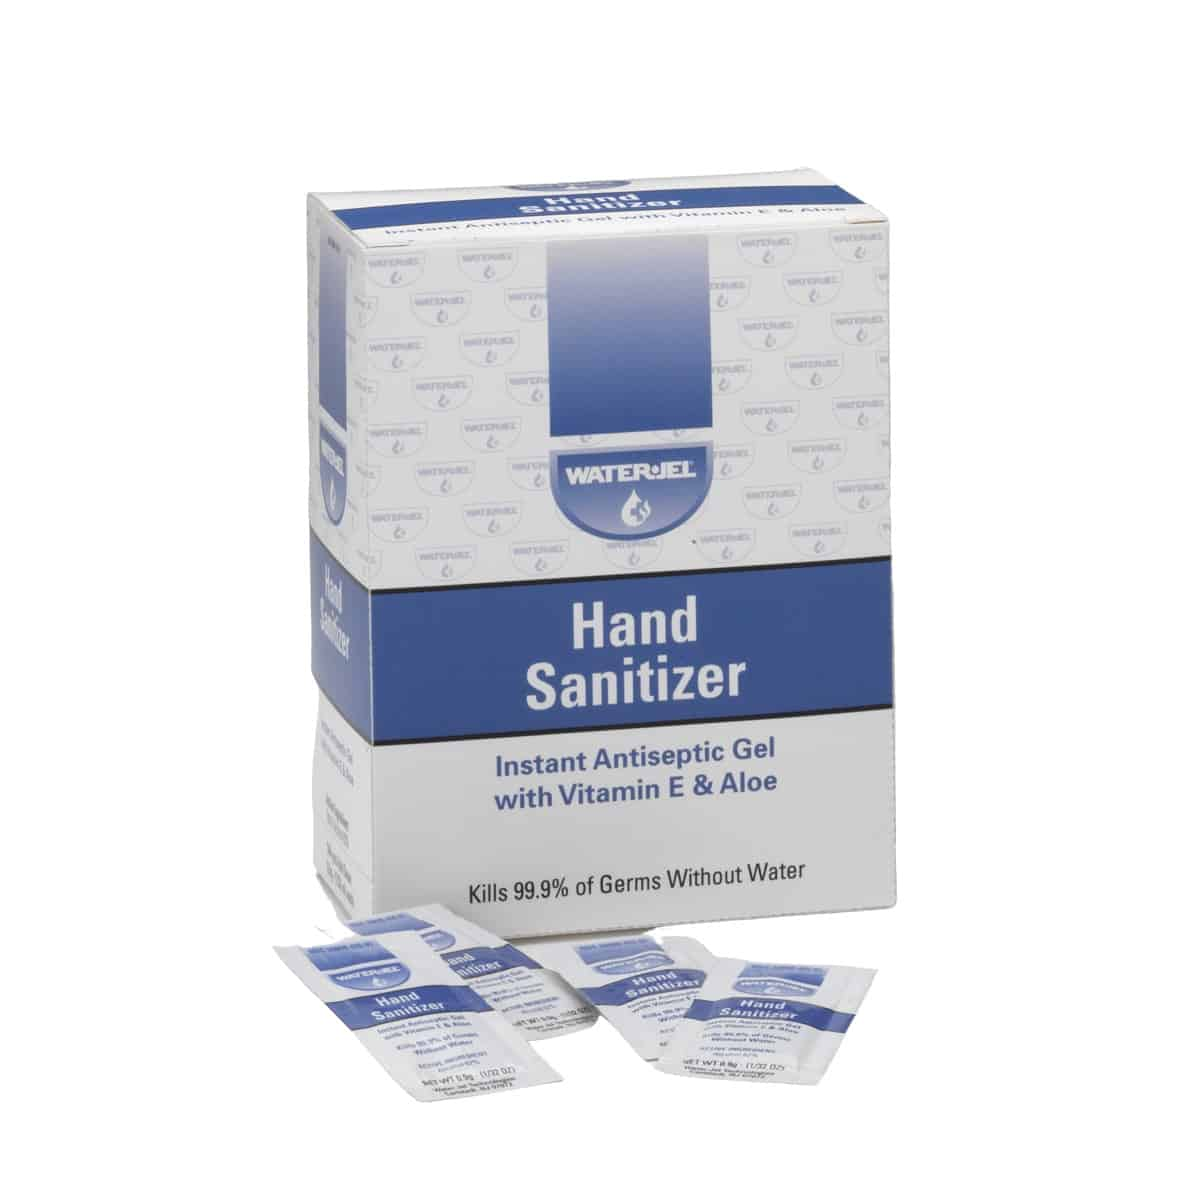 waterjel instant hand sanitizer unit dose packets